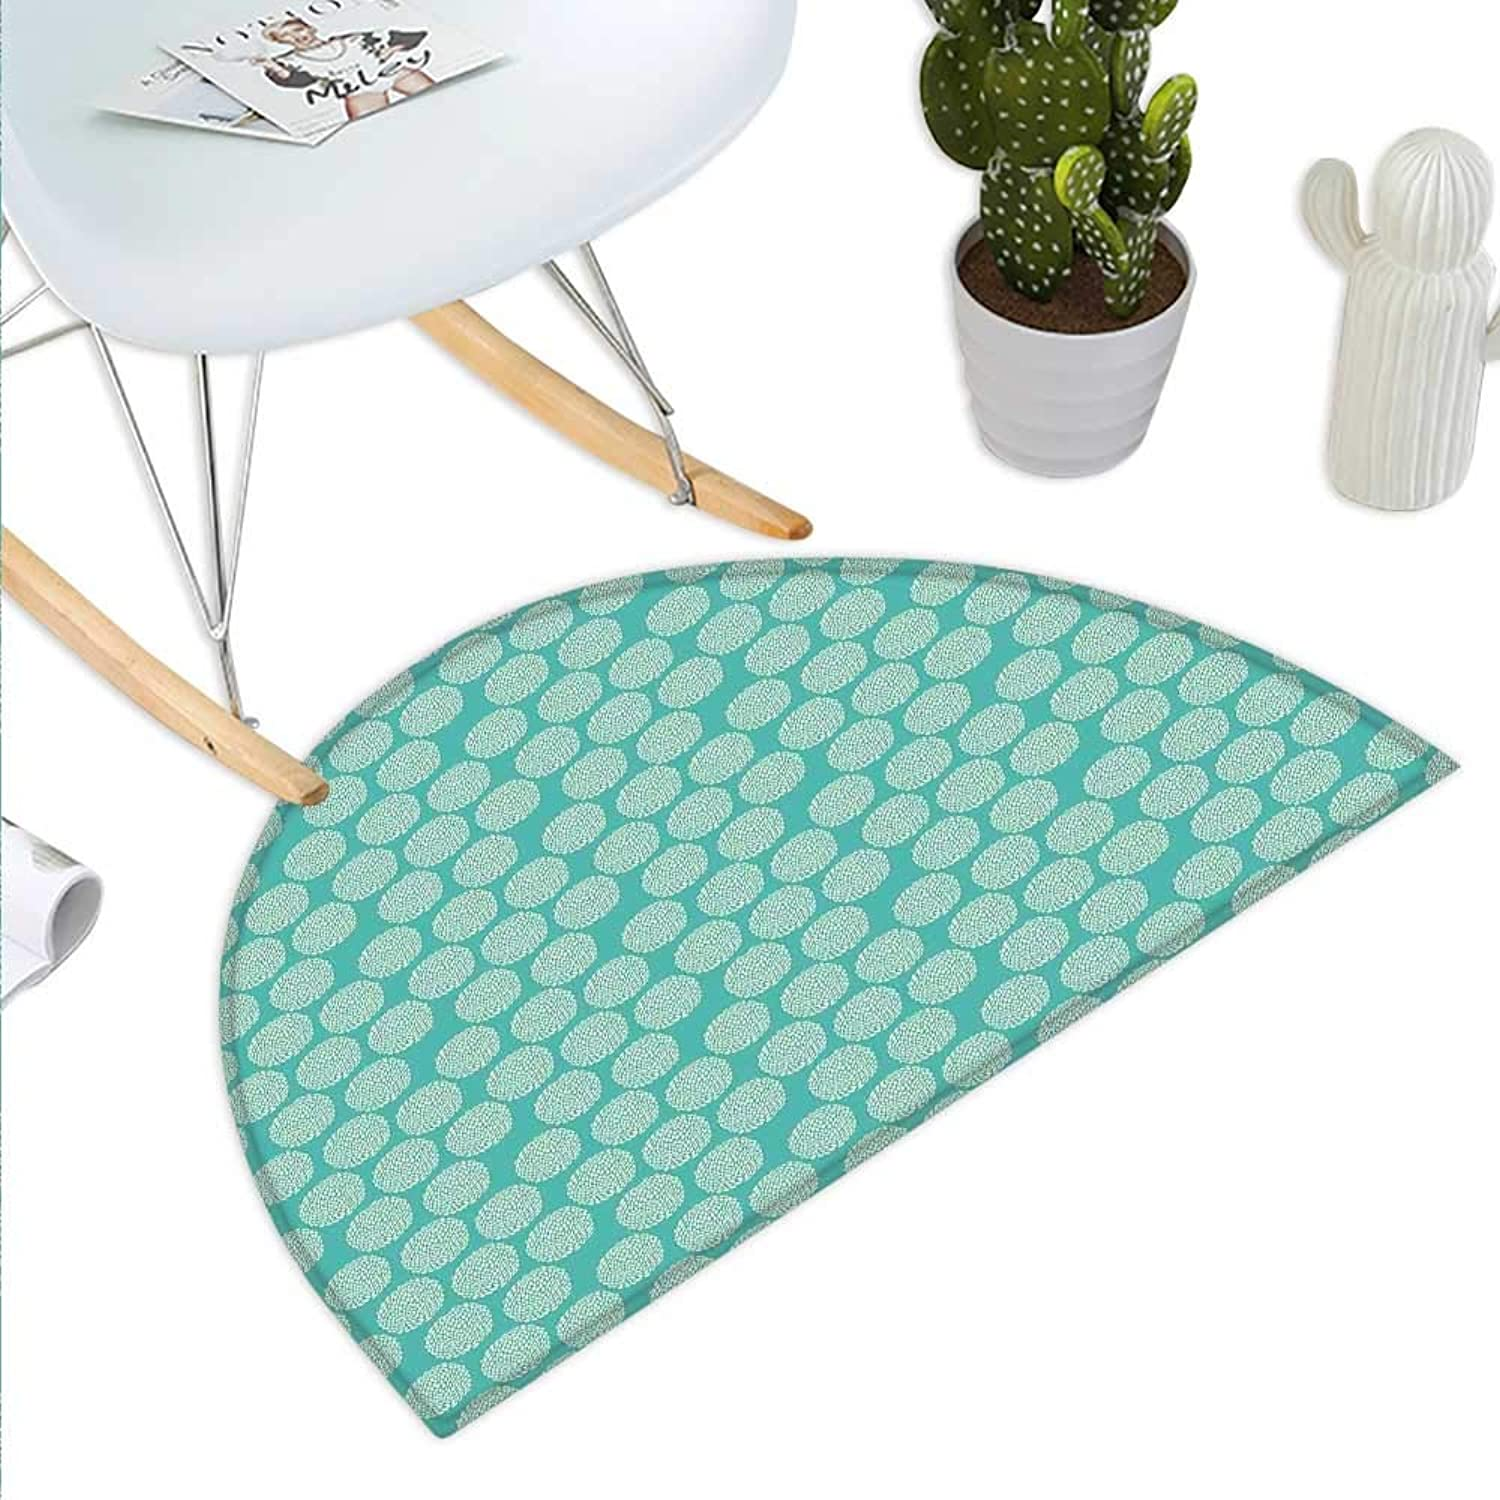 Floral Semicircle Doormat Abstract Motifs Inspired by Rural Woodland Nature Modern Foliage Design Halfmoon doormats H 23.6  xD 35.4  Turquoise and Cream